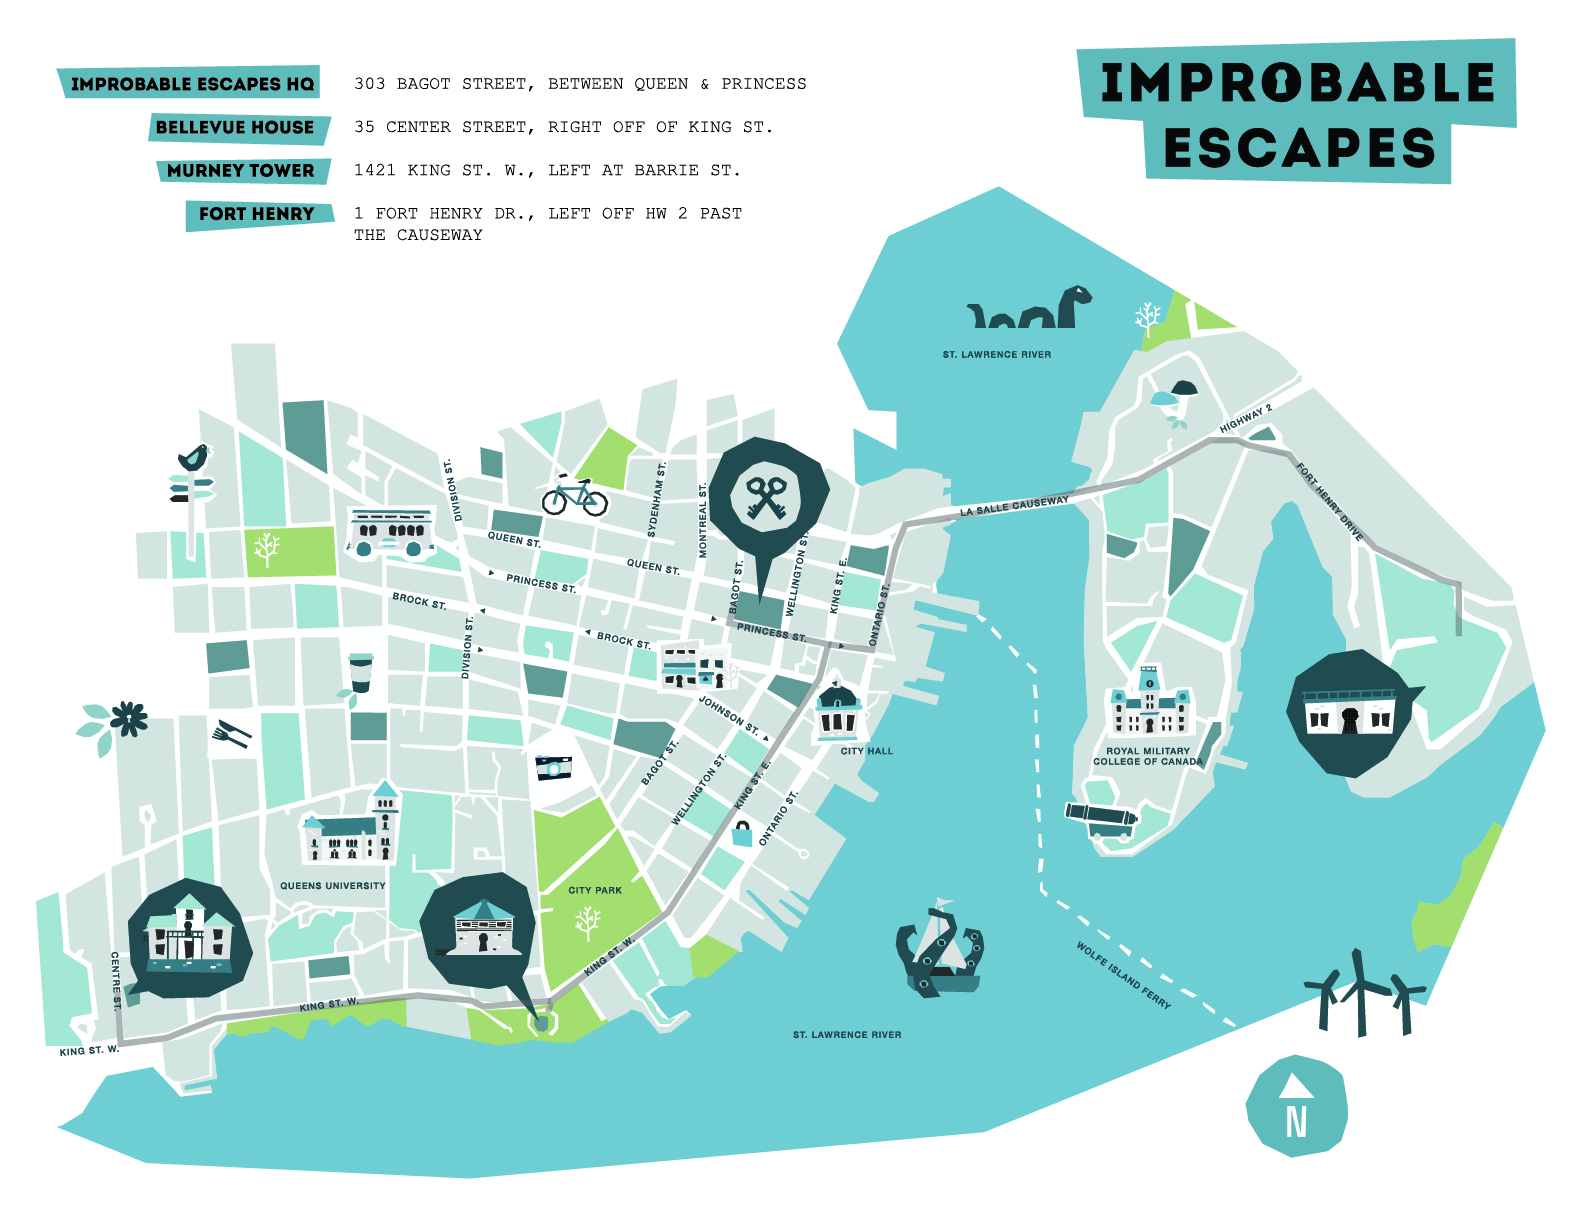 Some of Improbable Escapes' pop-up locations